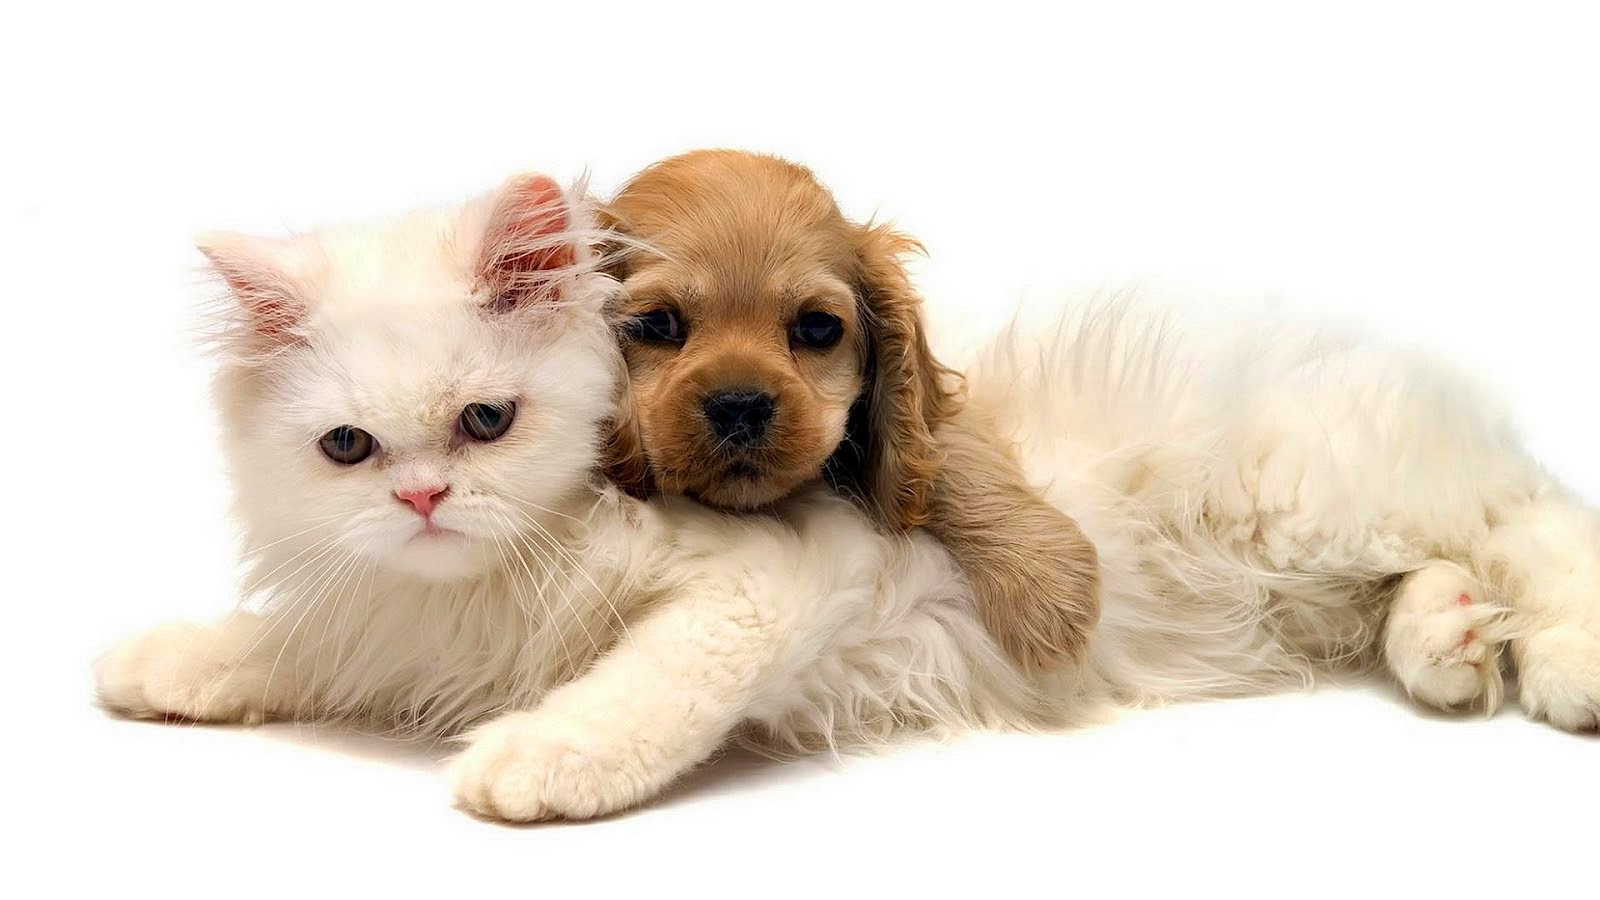 HD animal wallpaper of a cat and dog cuddling Cat and dog wallpaper 1600x900